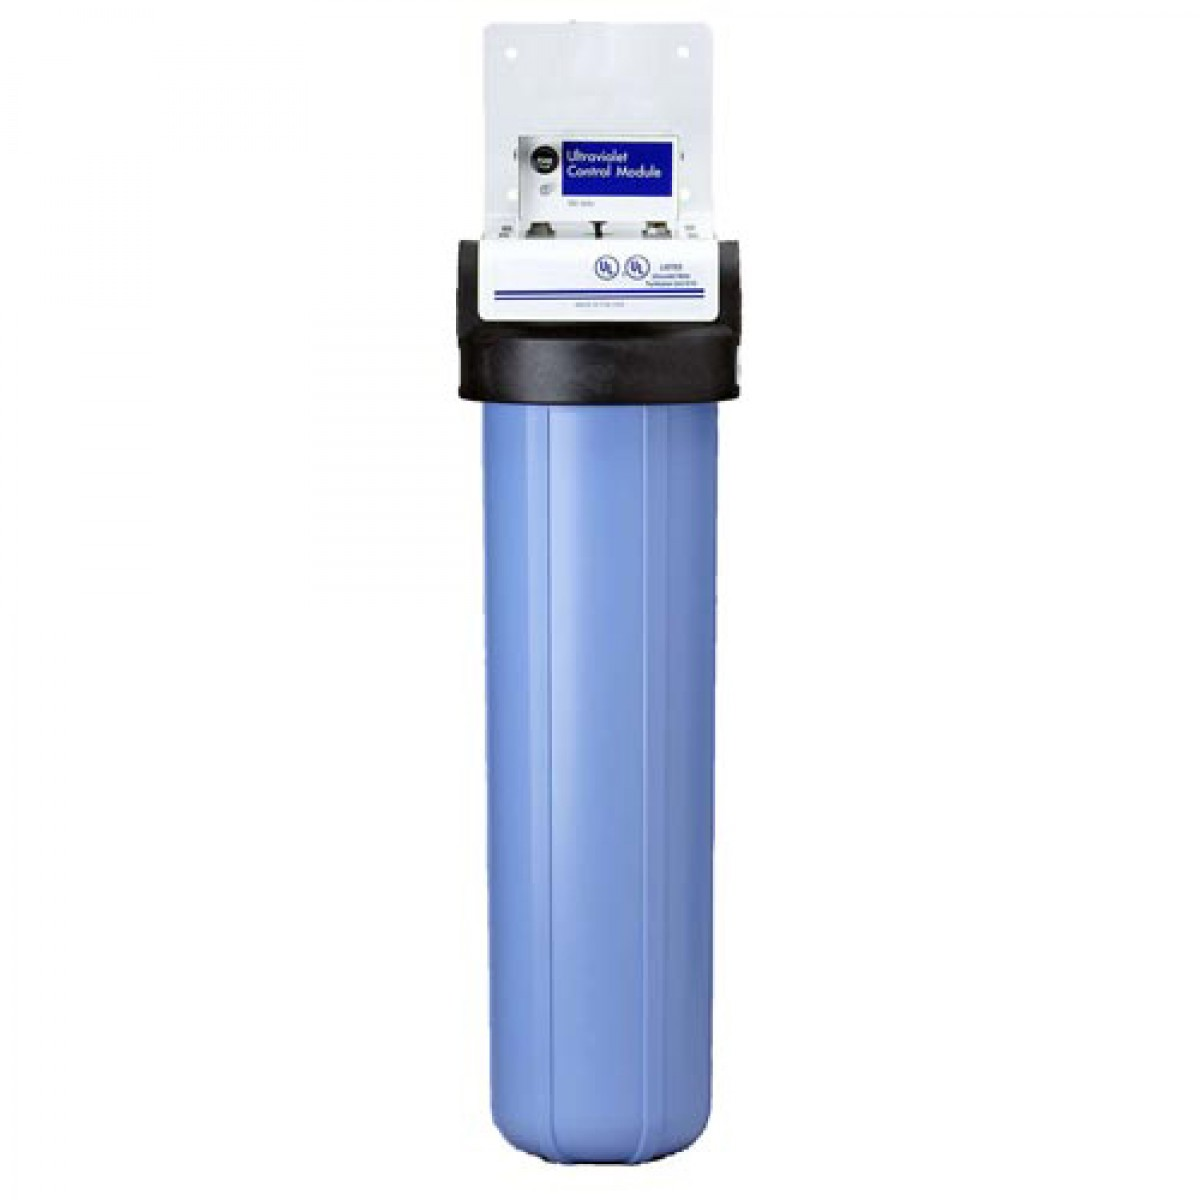 Omnipure Water Filter System moreover Reusable Water Filter  #1B2188